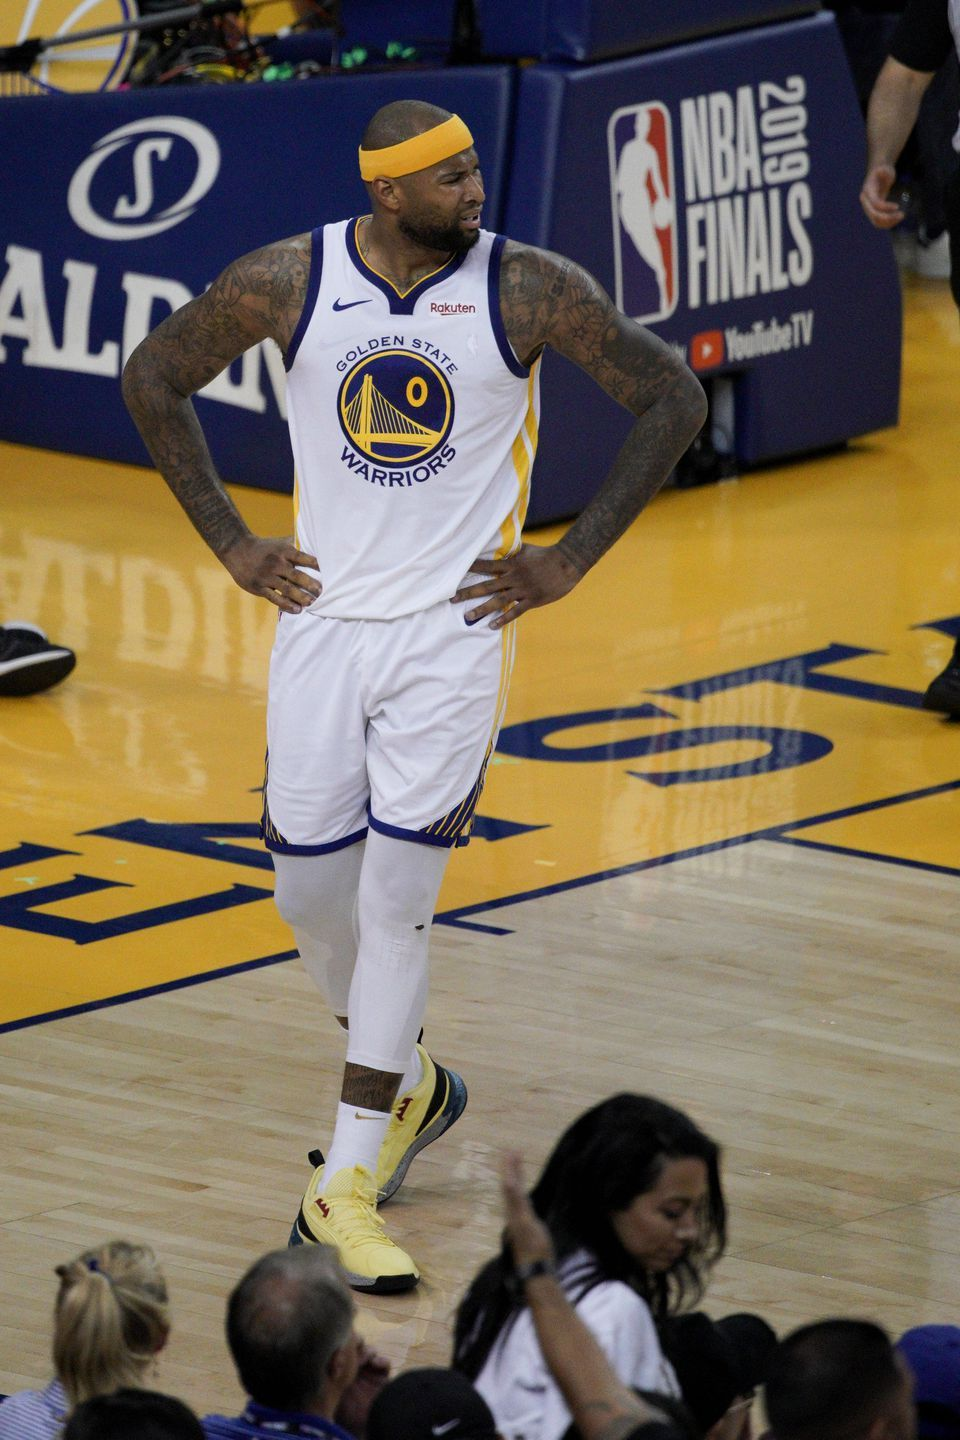 2019 Nba Finals Game 3 is the perfect High Quality NBA